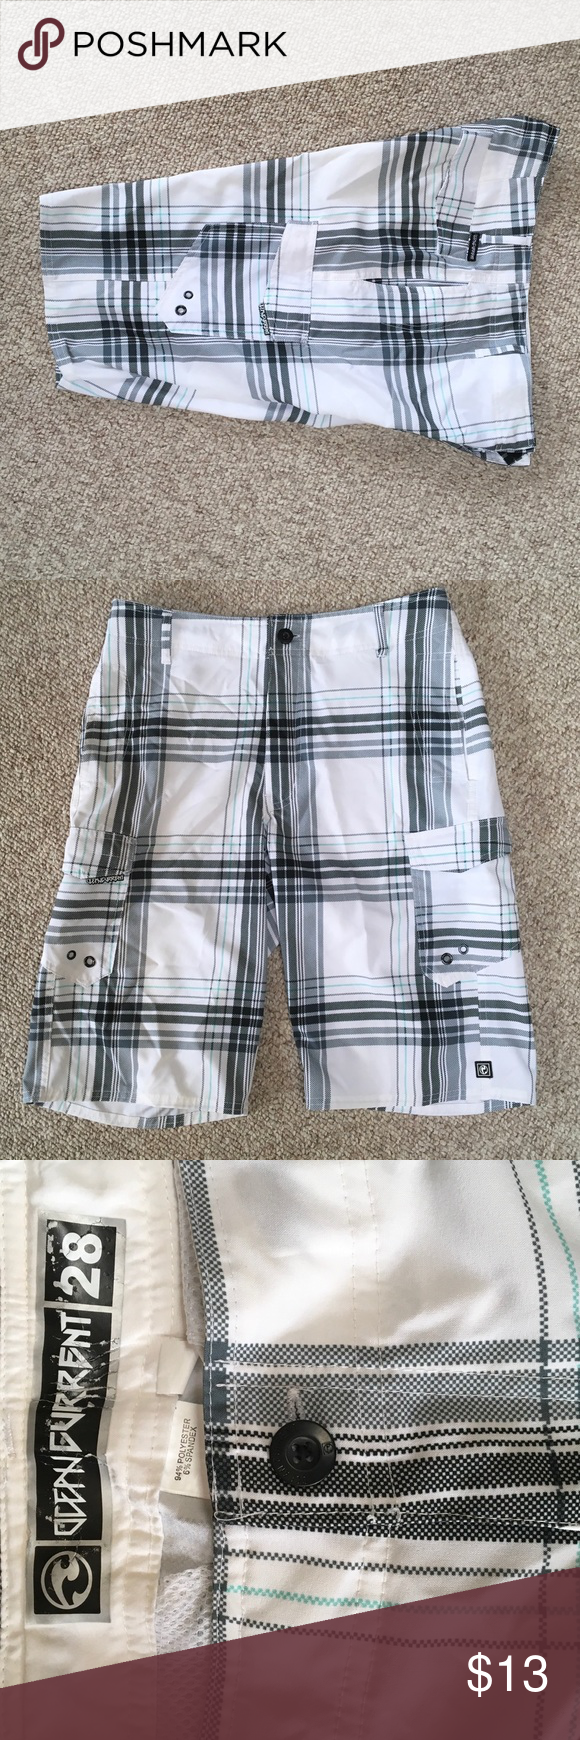 Ocean Current Swim Trunks Mens Size 28 Zip And Button Front With Draw String Velcro Back Side Pockets Shorts Athletic